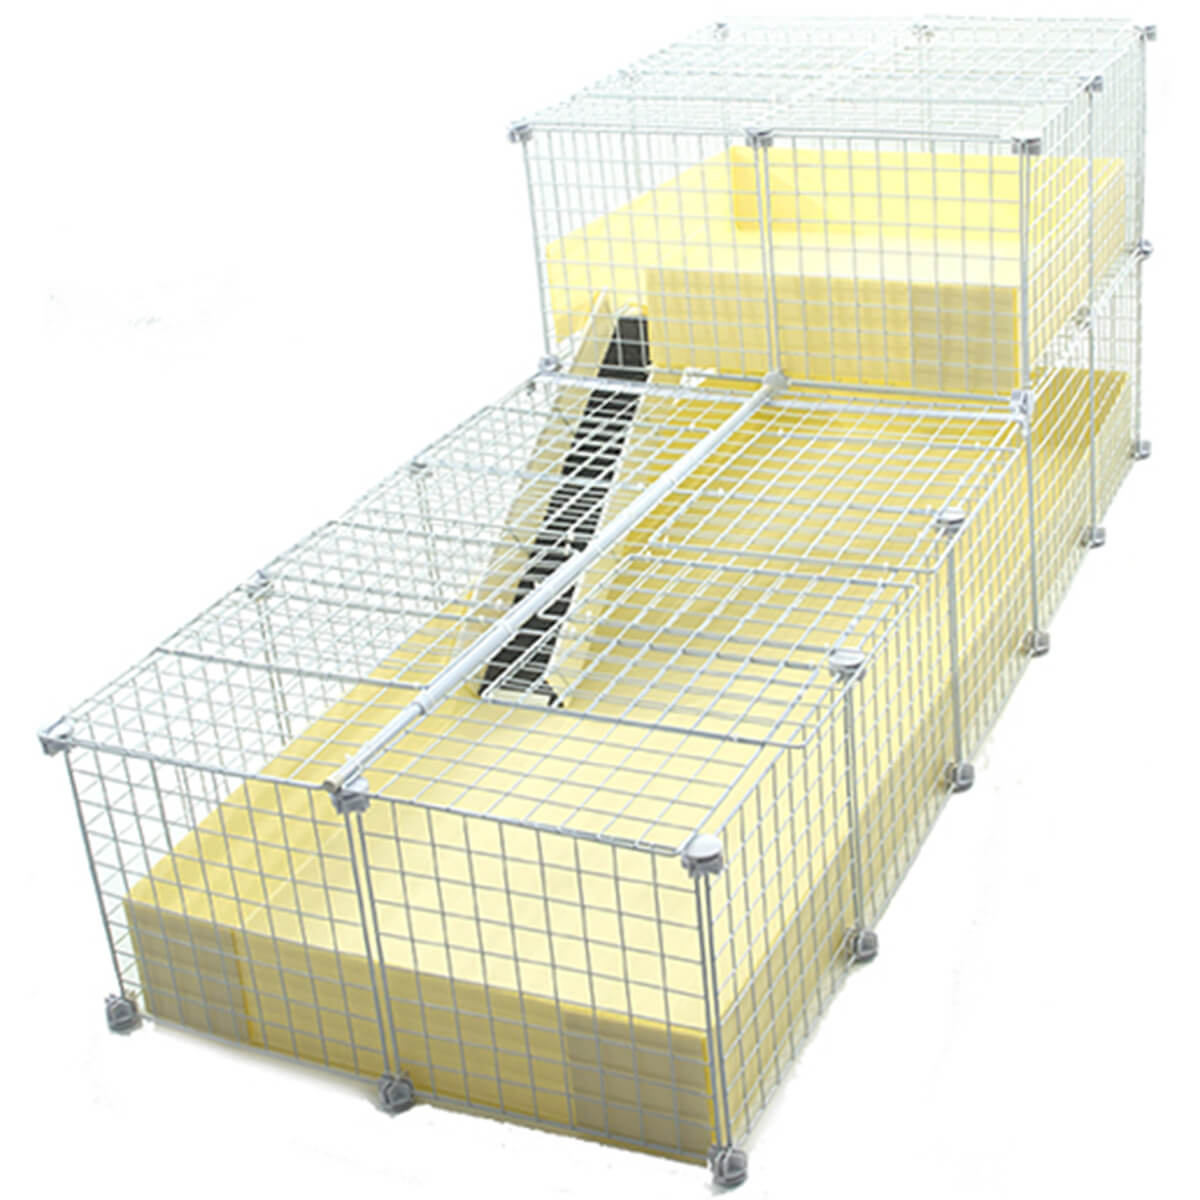 2x5 C and C Cage, covered with 2x2 loft